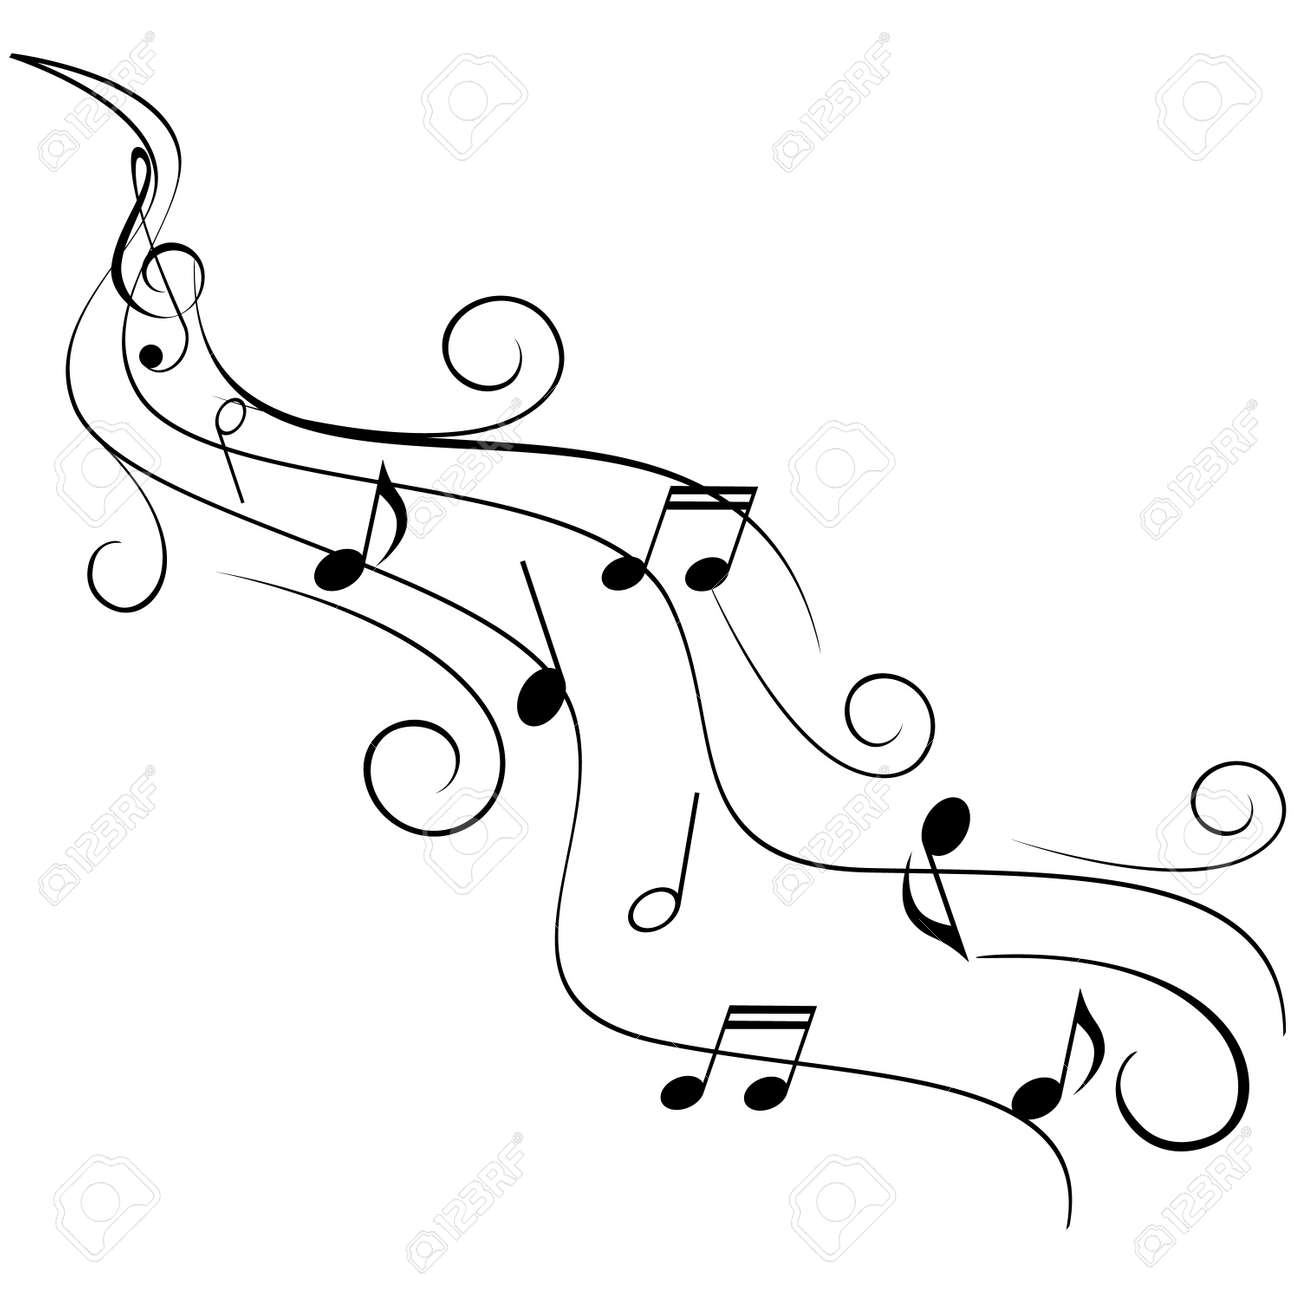 Musical notes staff background on white vector by tassel78 image - Treble Clef Music Notes On Swirling Stave Illustration